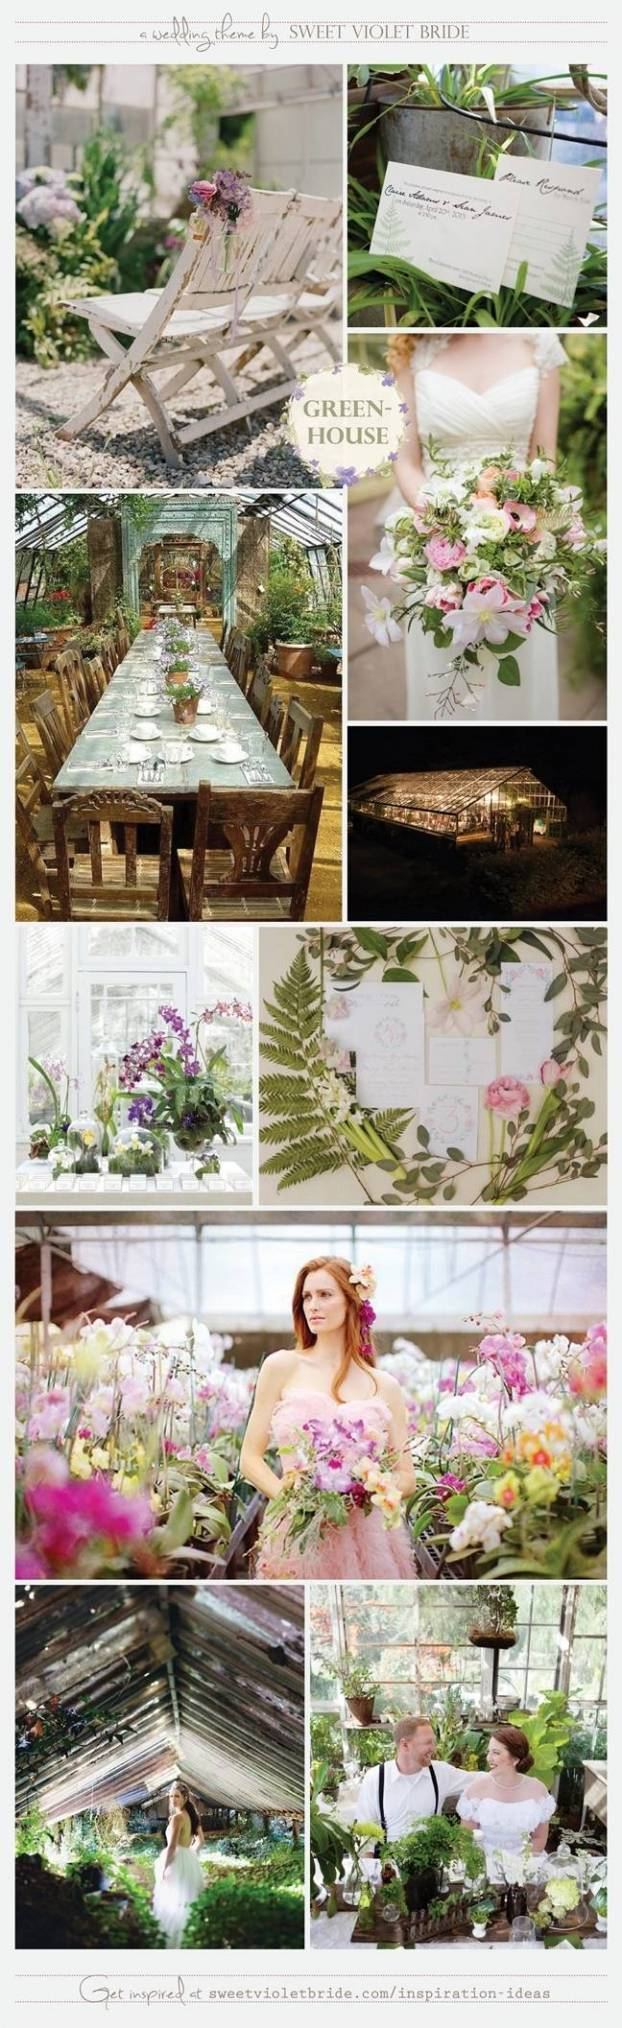 Wedding Inspiration Board #28: Greenhouse